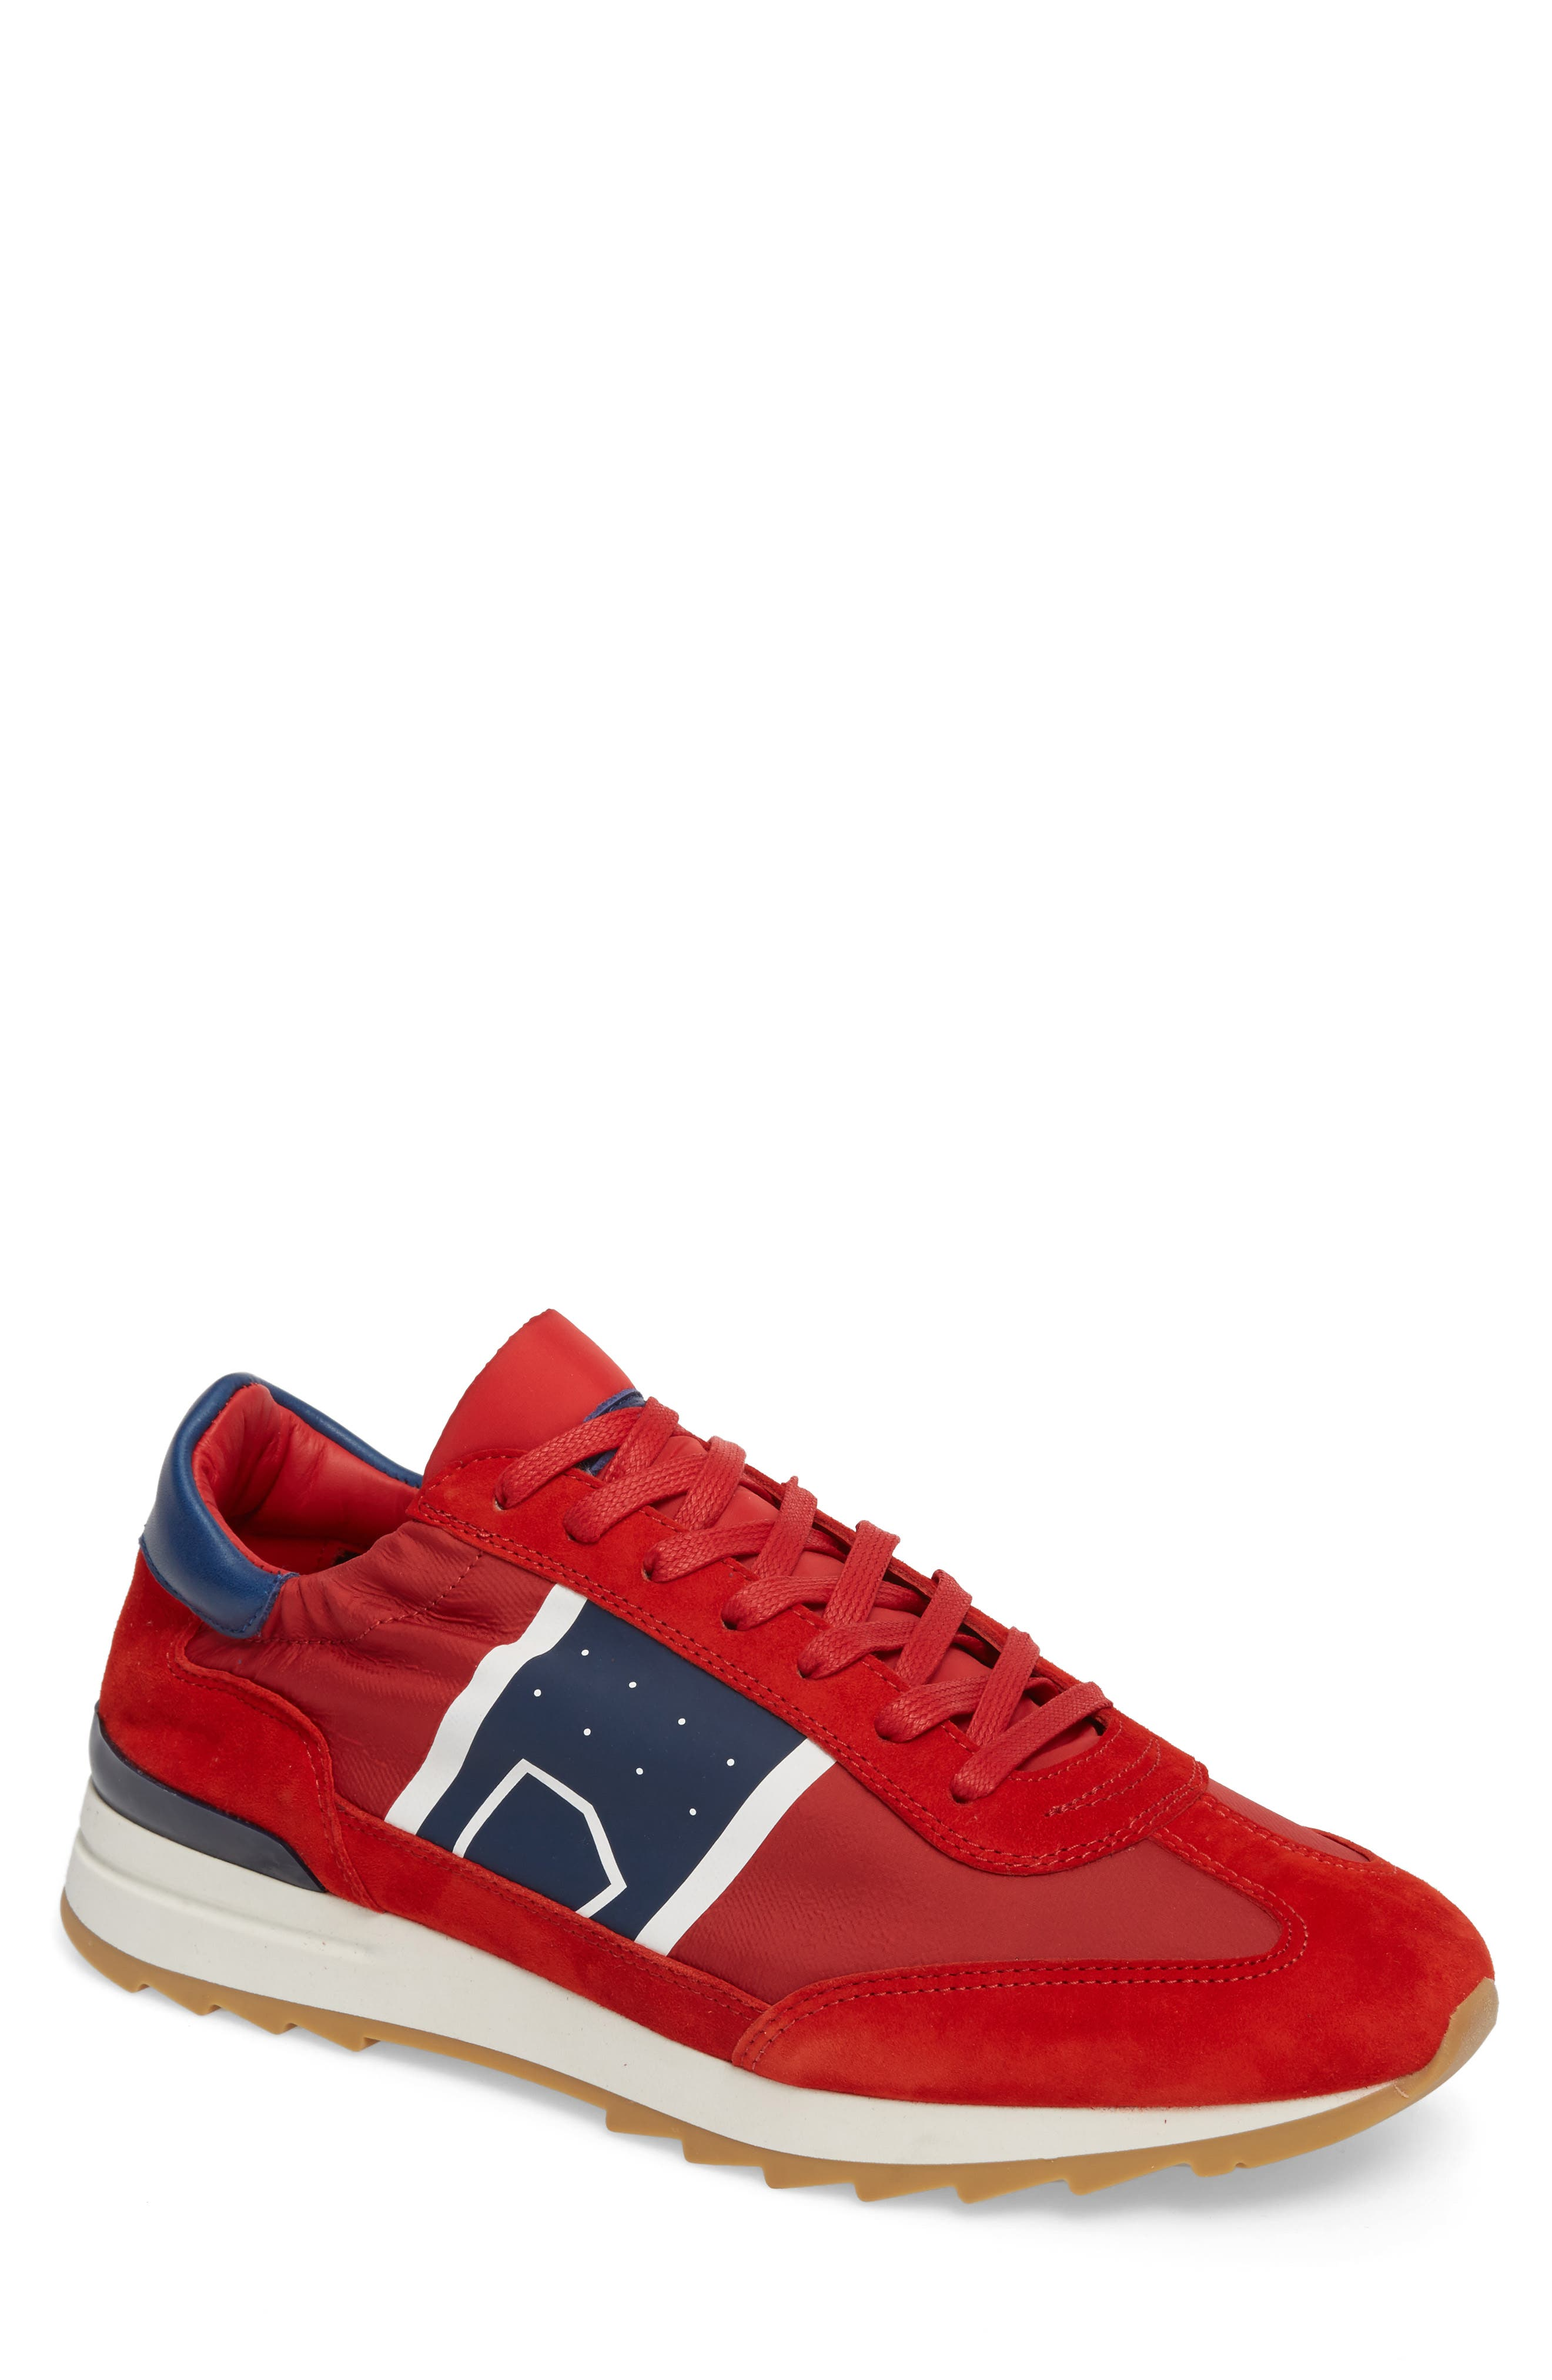 Toujours Sneaker,                         Main,                         color, Red/ Blue